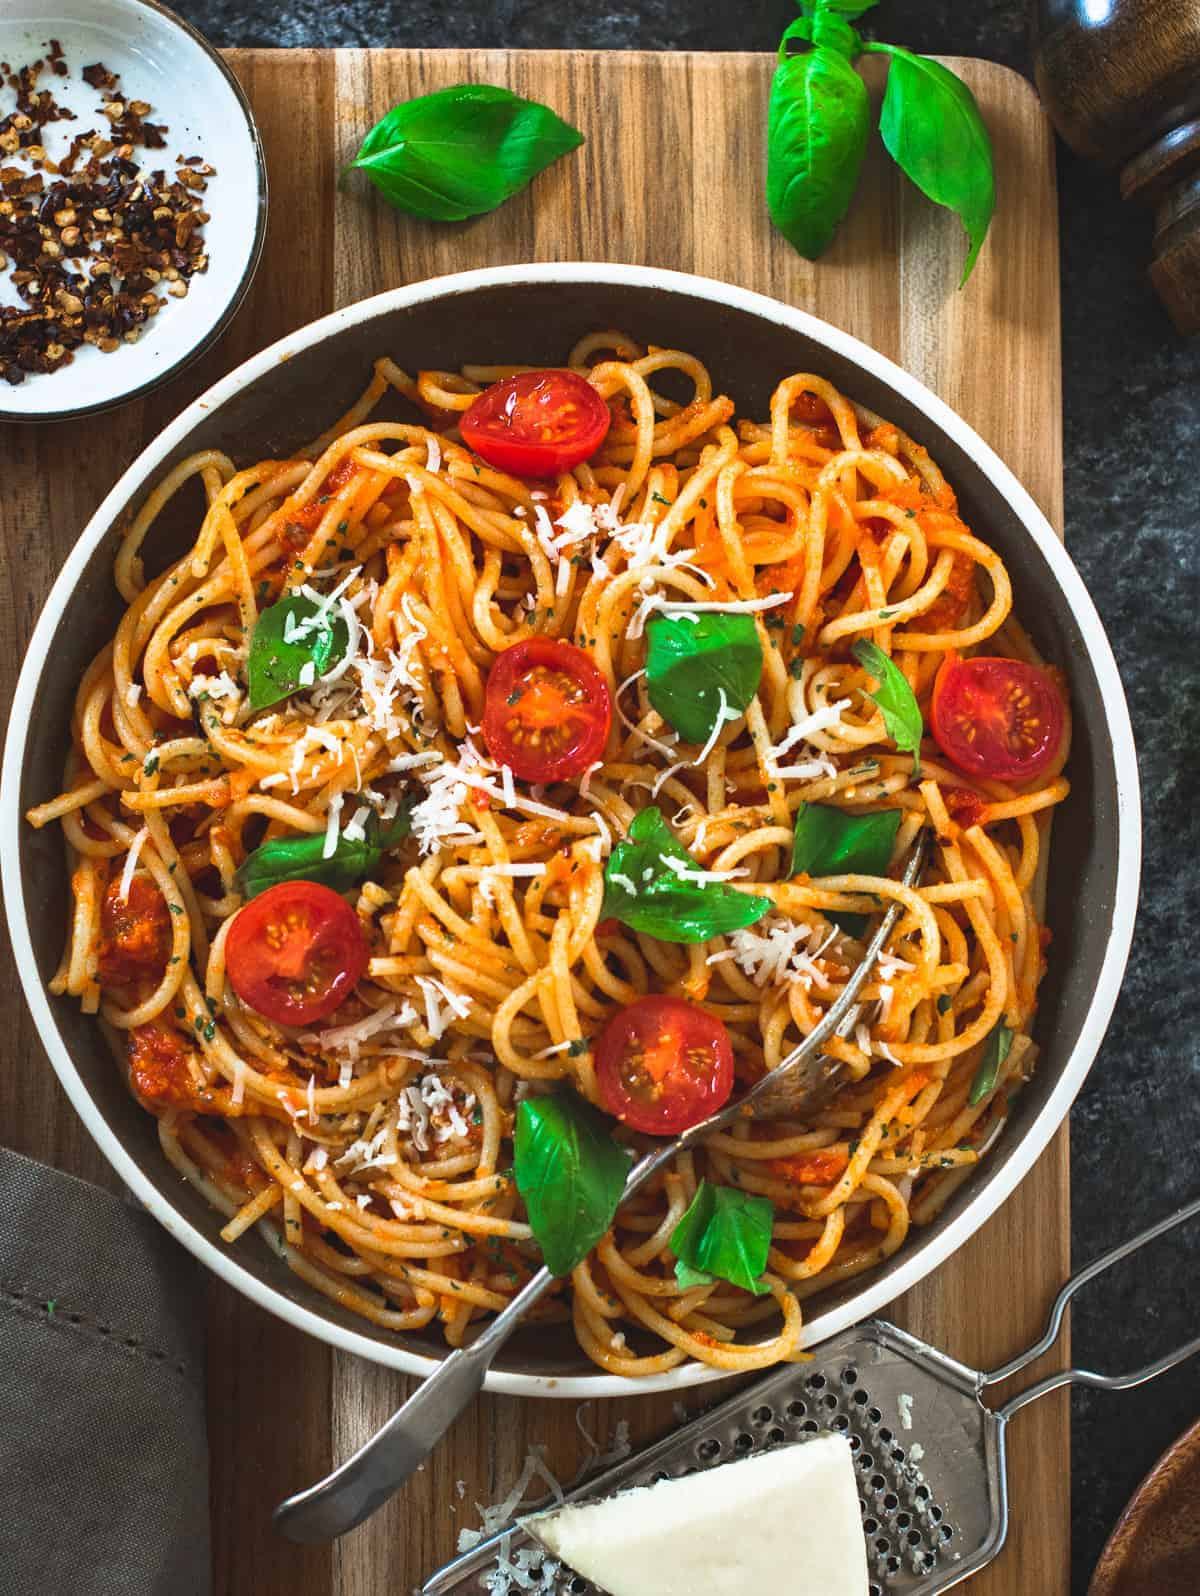 Spaghetti pasta in a brown dish with tomatoes